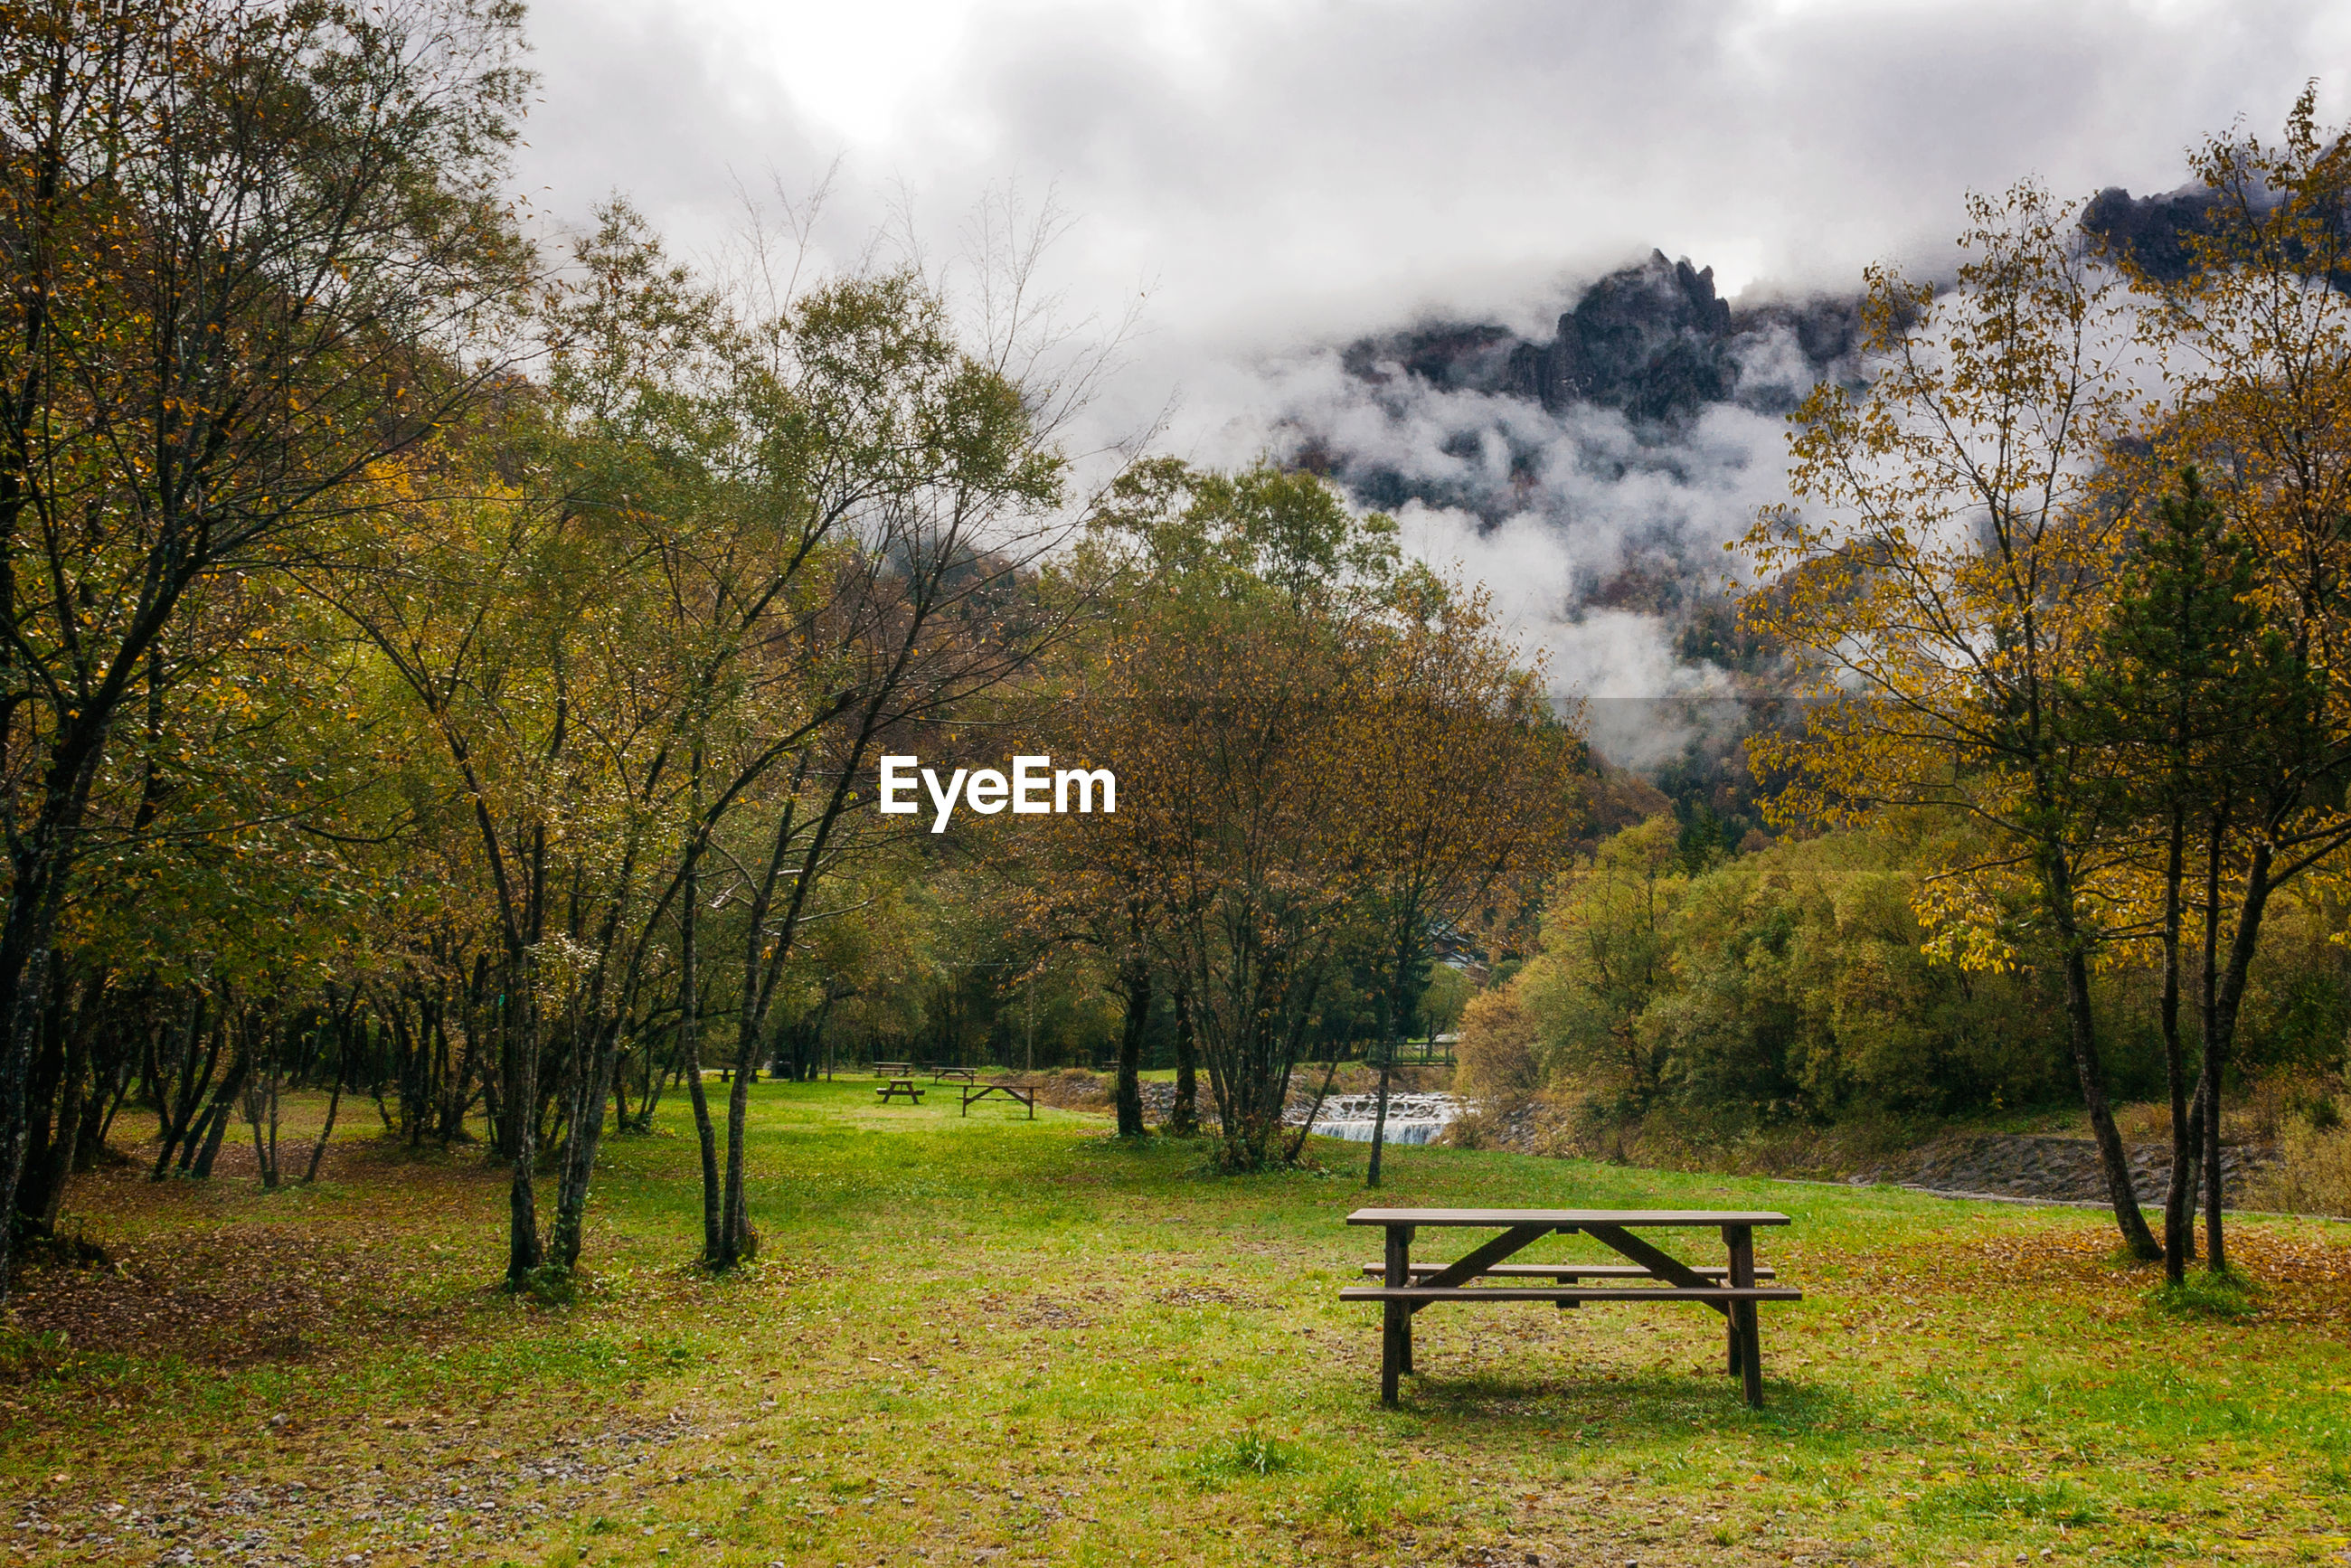 PARK BENCH BY TREES DURING AUTUMN